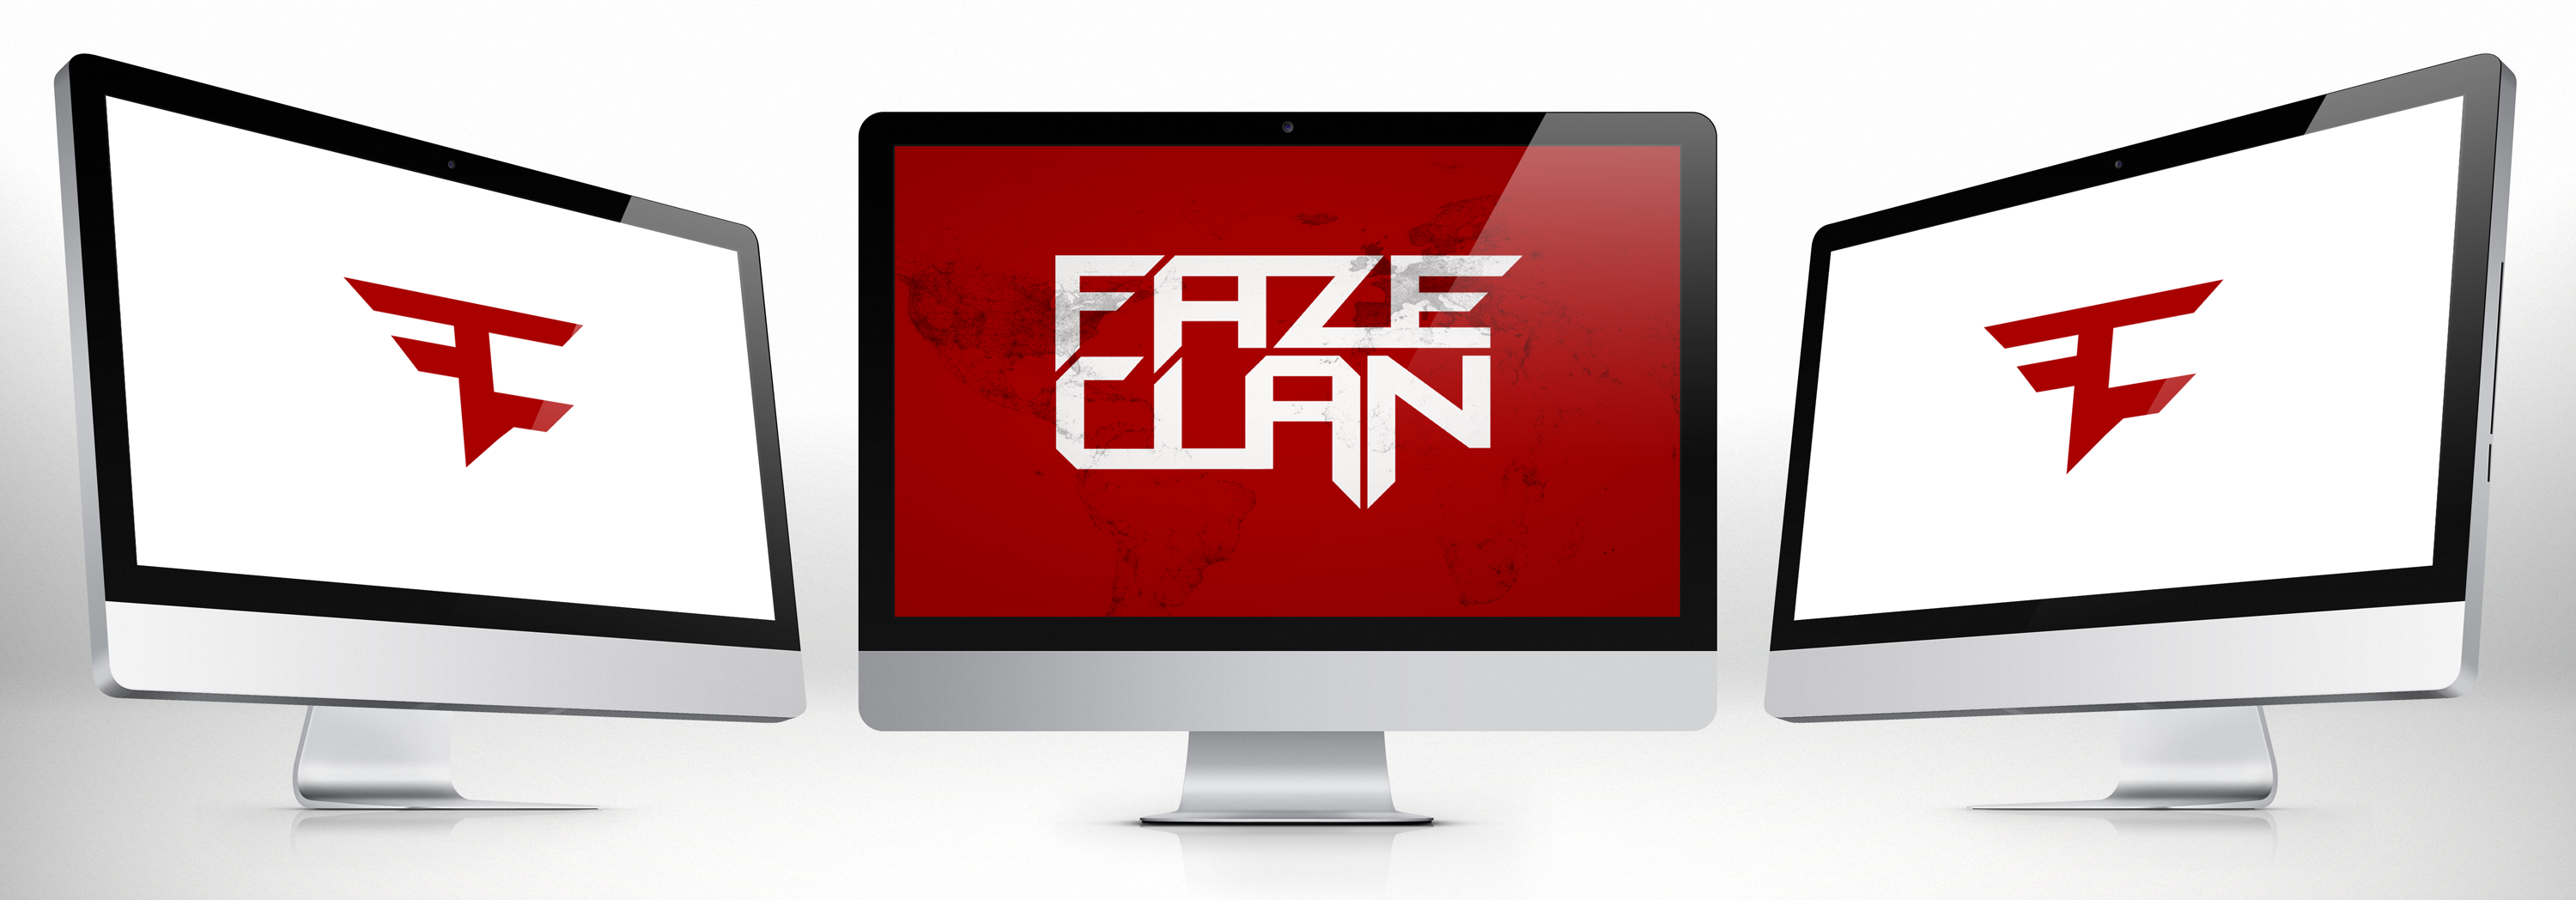 Faze clan logo branding on behance buycottarizona